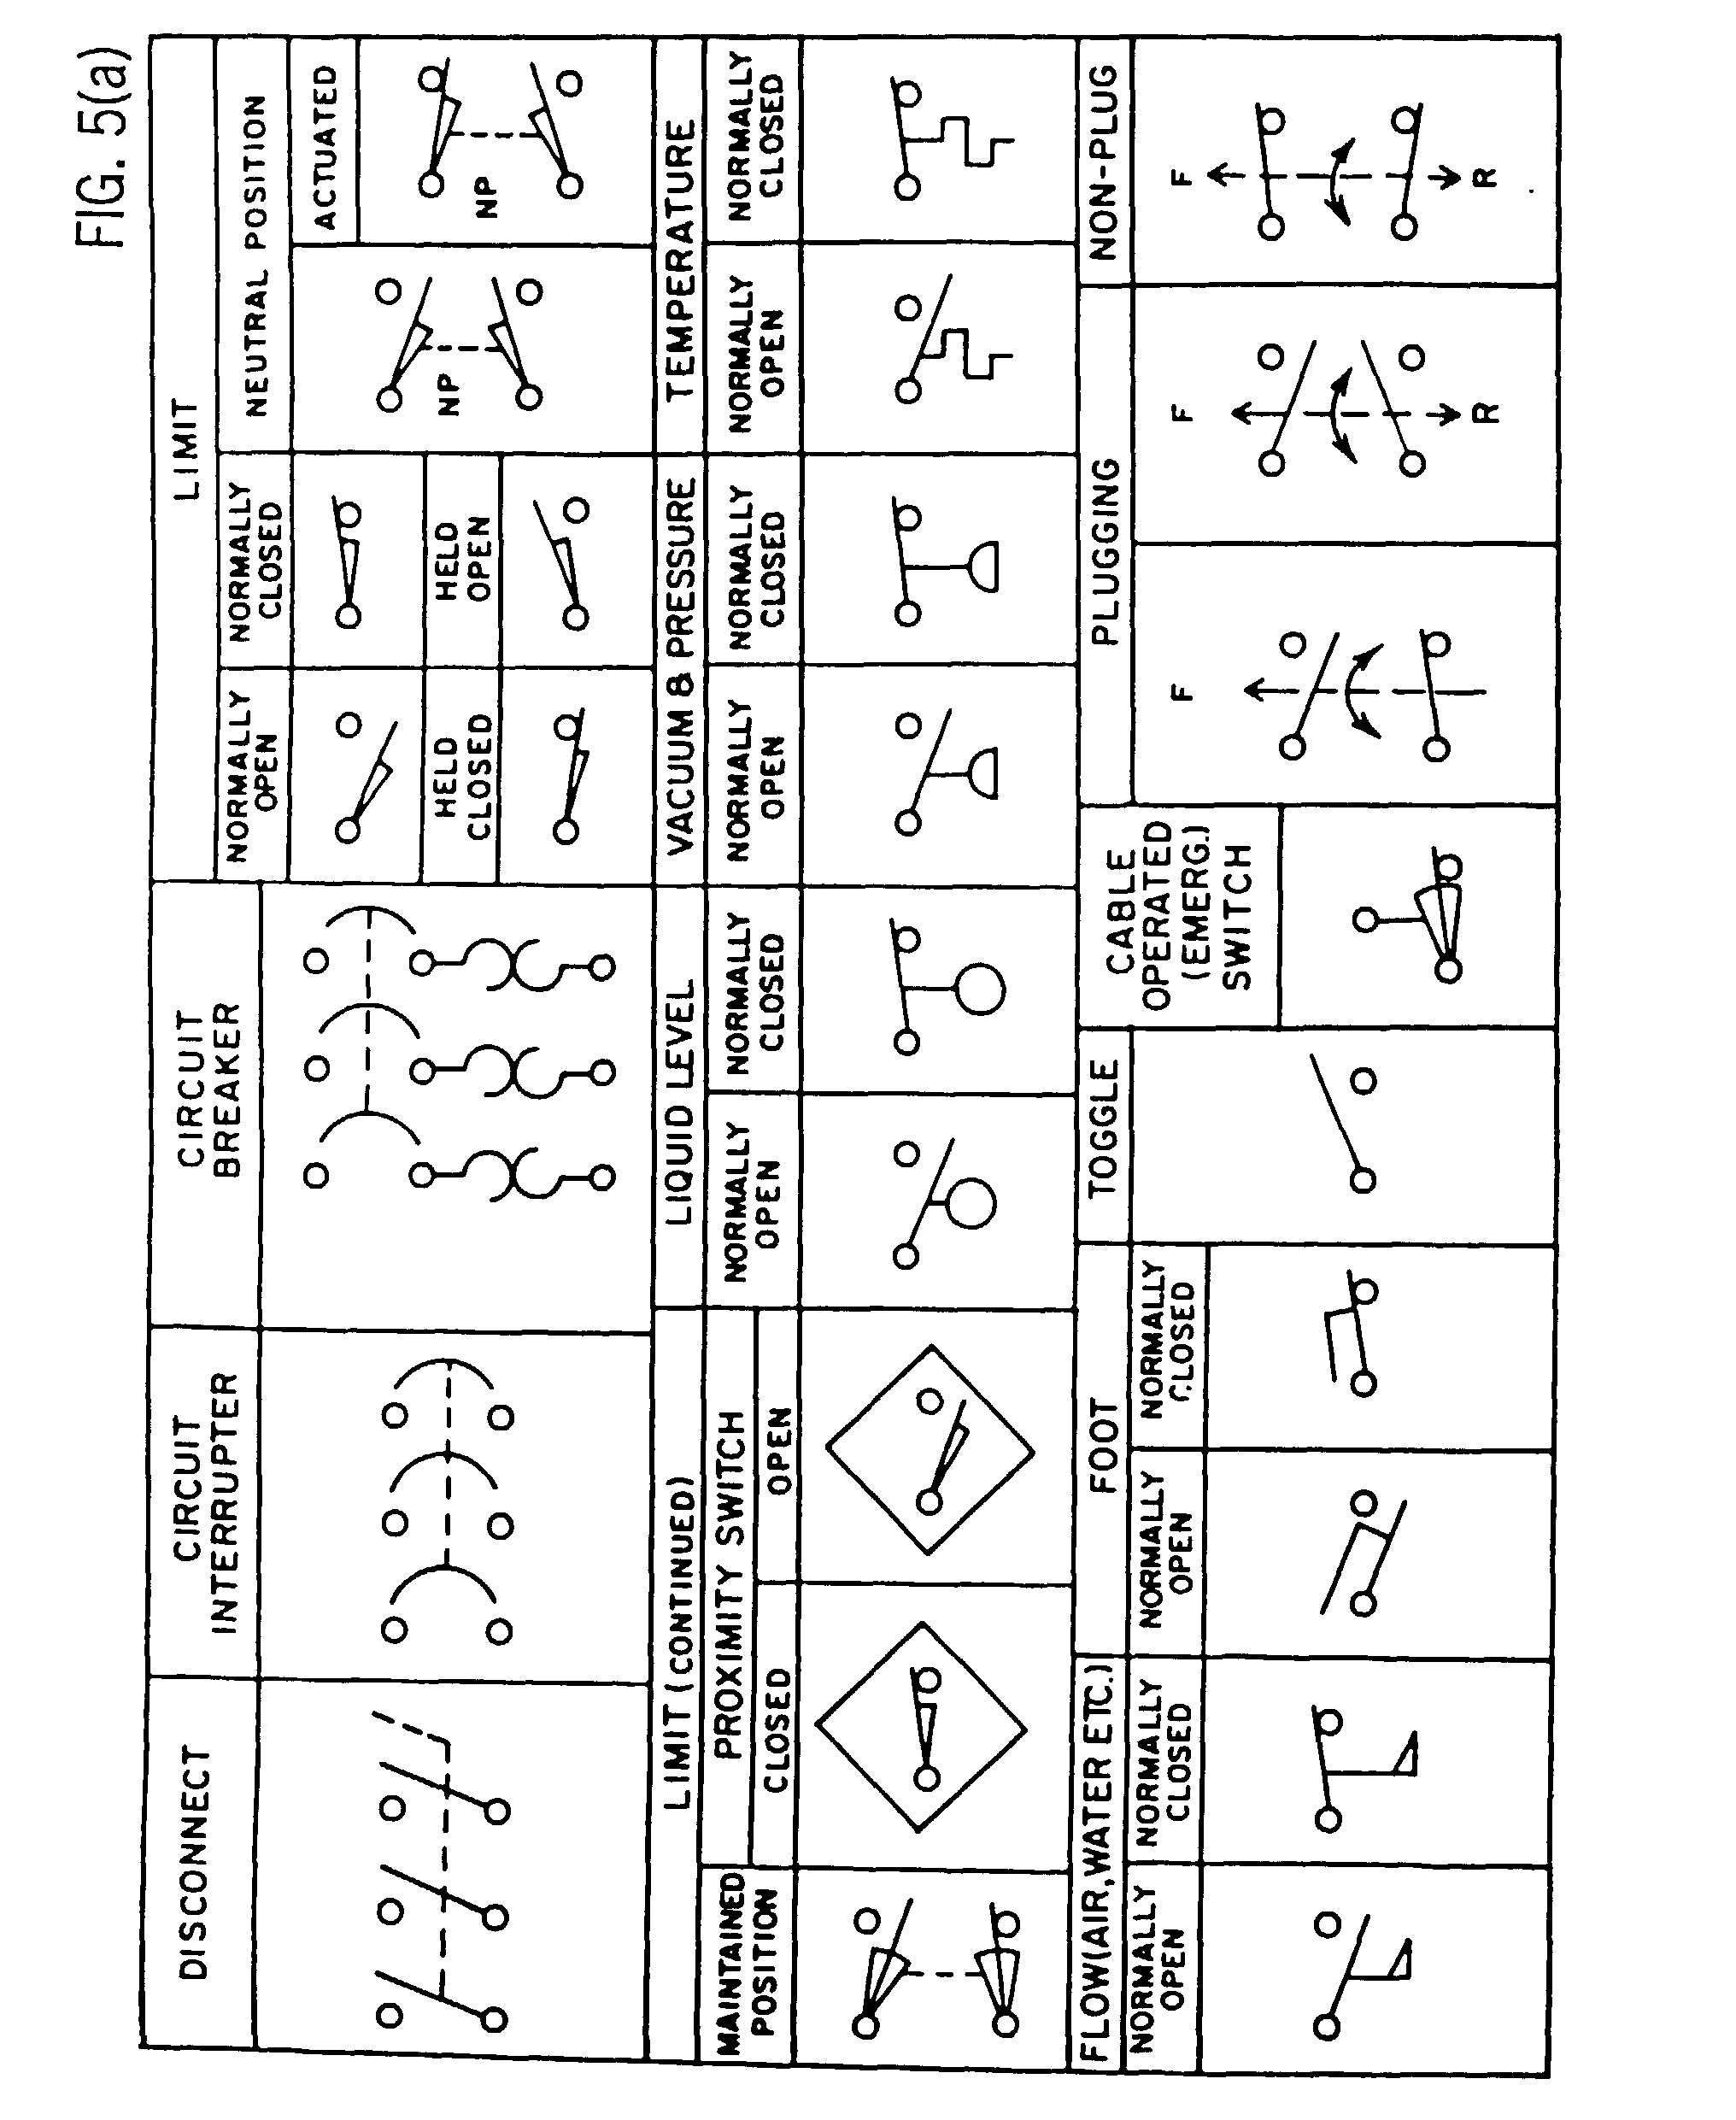 iec electrical symbols single line diagram images one line symbols as well iec electrical schematic